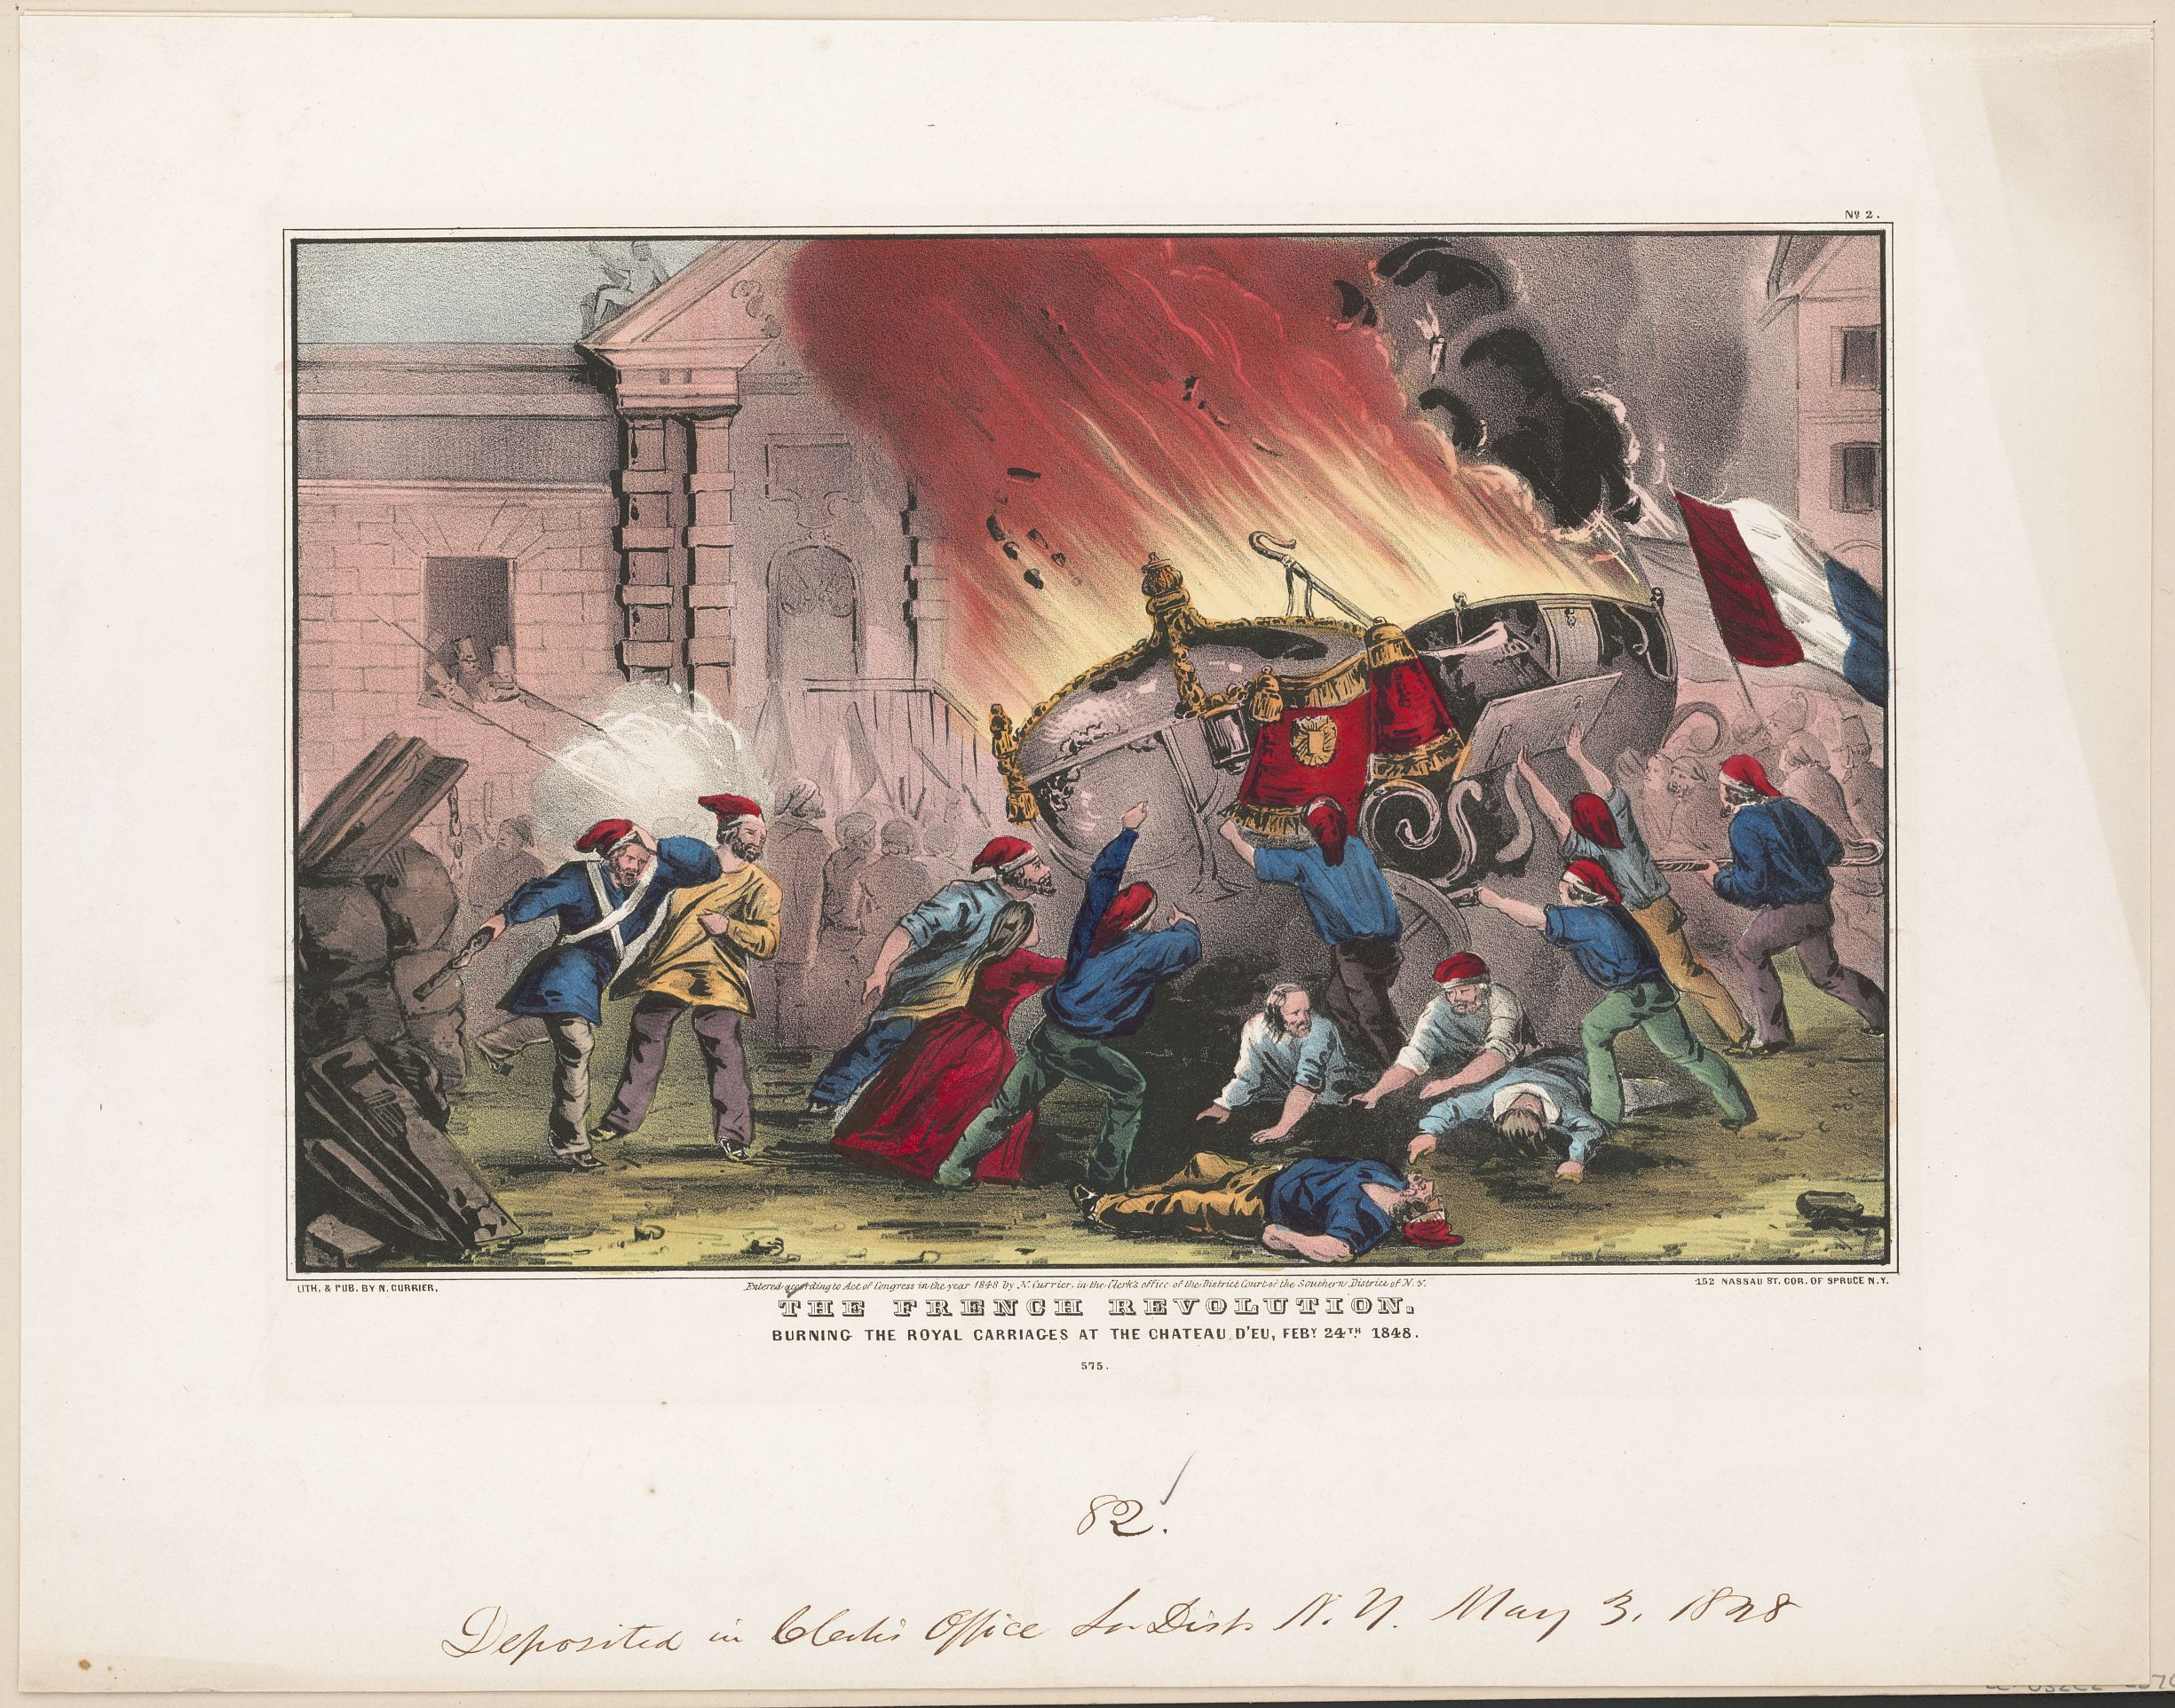 The French revolution: burning the royal carriages at the Chateau d'Eu, Feby. 24, 1848 Physical description: 1 print : lithograph, hand-colored. Lithograph by N. Currier (firm), c 1848. Place: Library of Congress, USA. Public Dopmain.